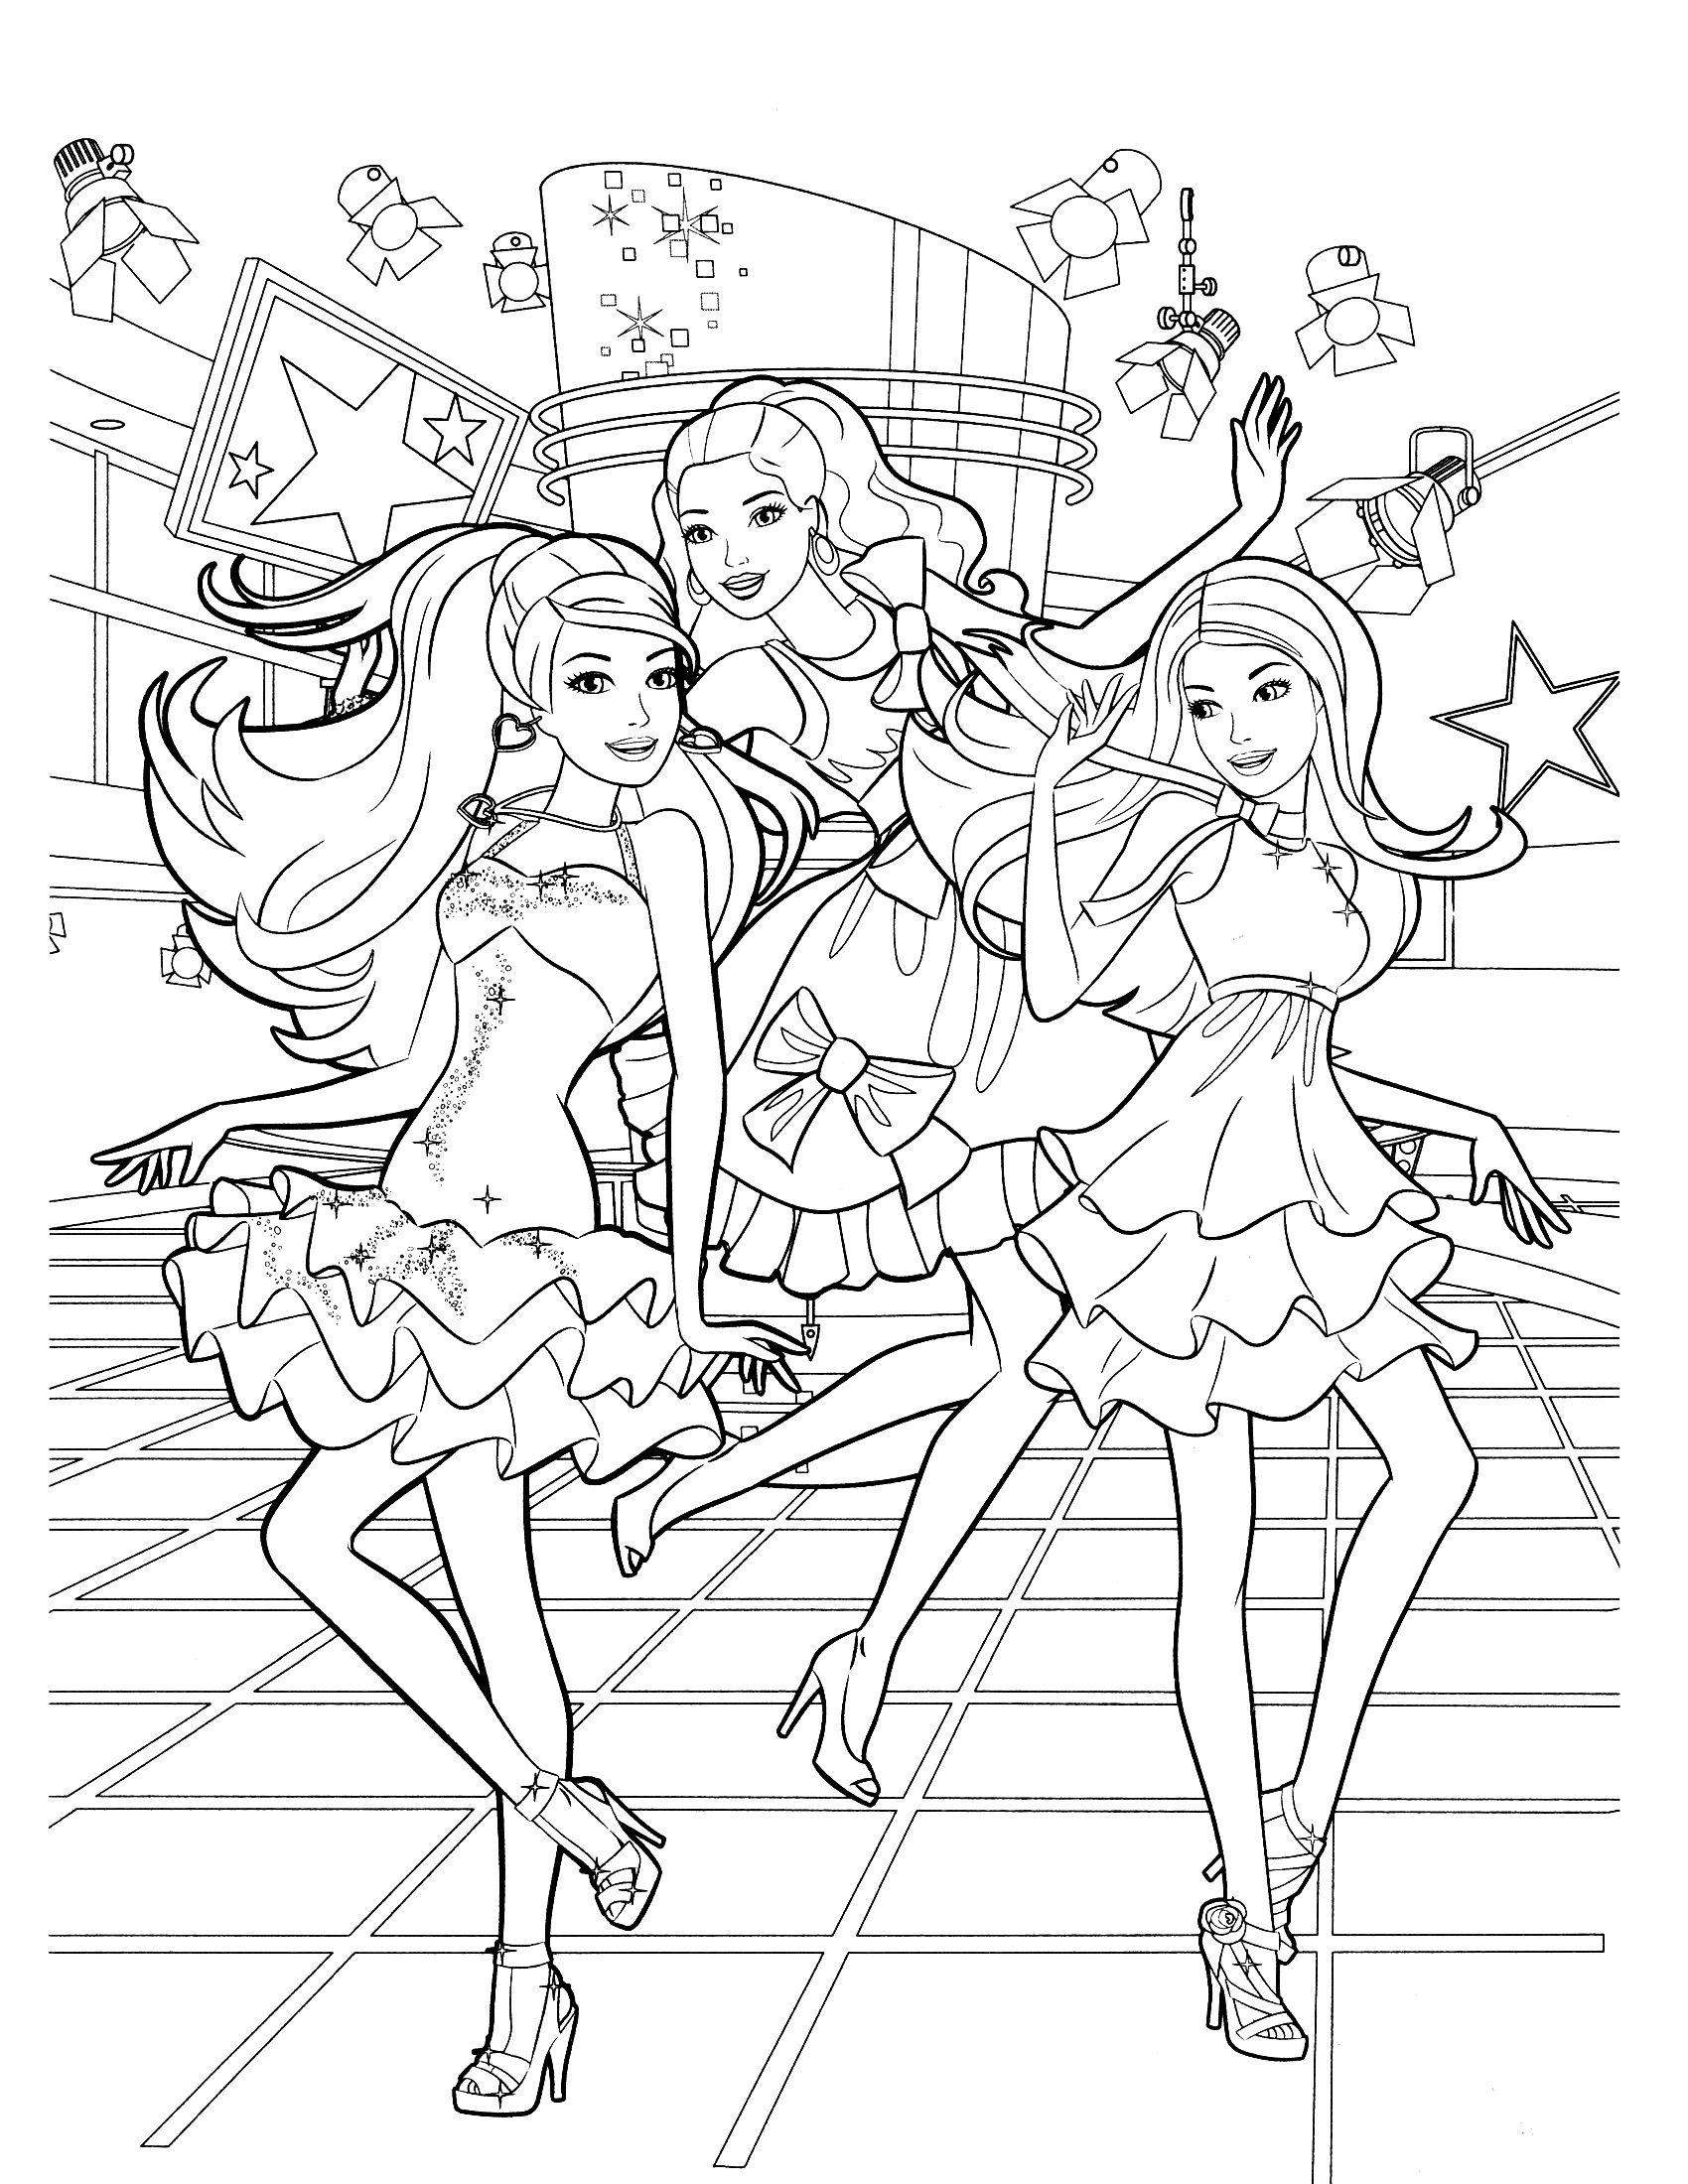 barbie doll pictures to print barbie doll coloring pages at getcoloringscom free barbie print doll to pictures